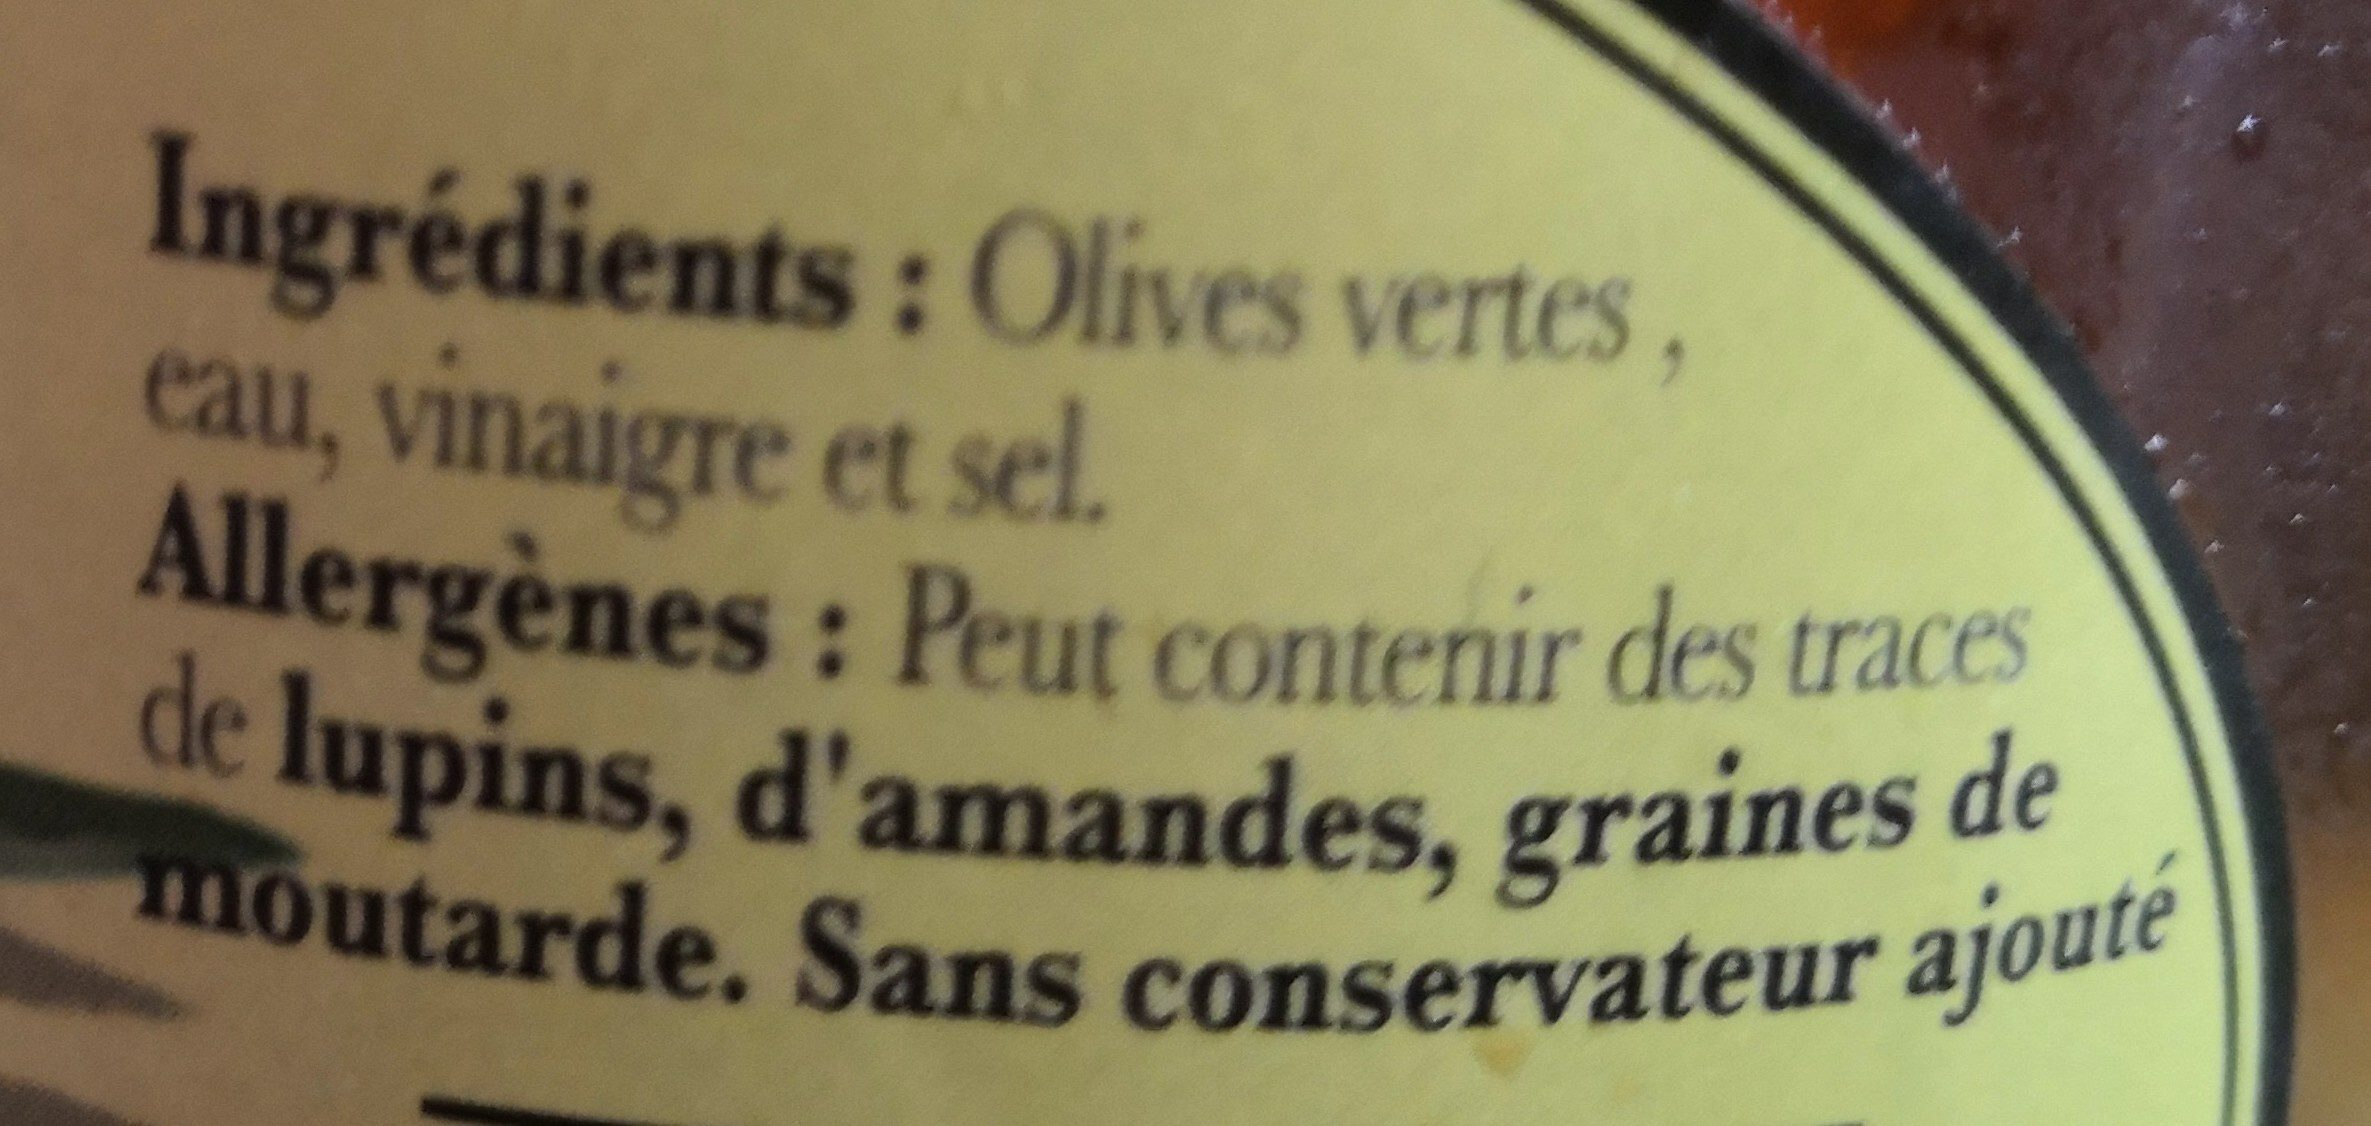 Olives vertes - Ingredients - fr